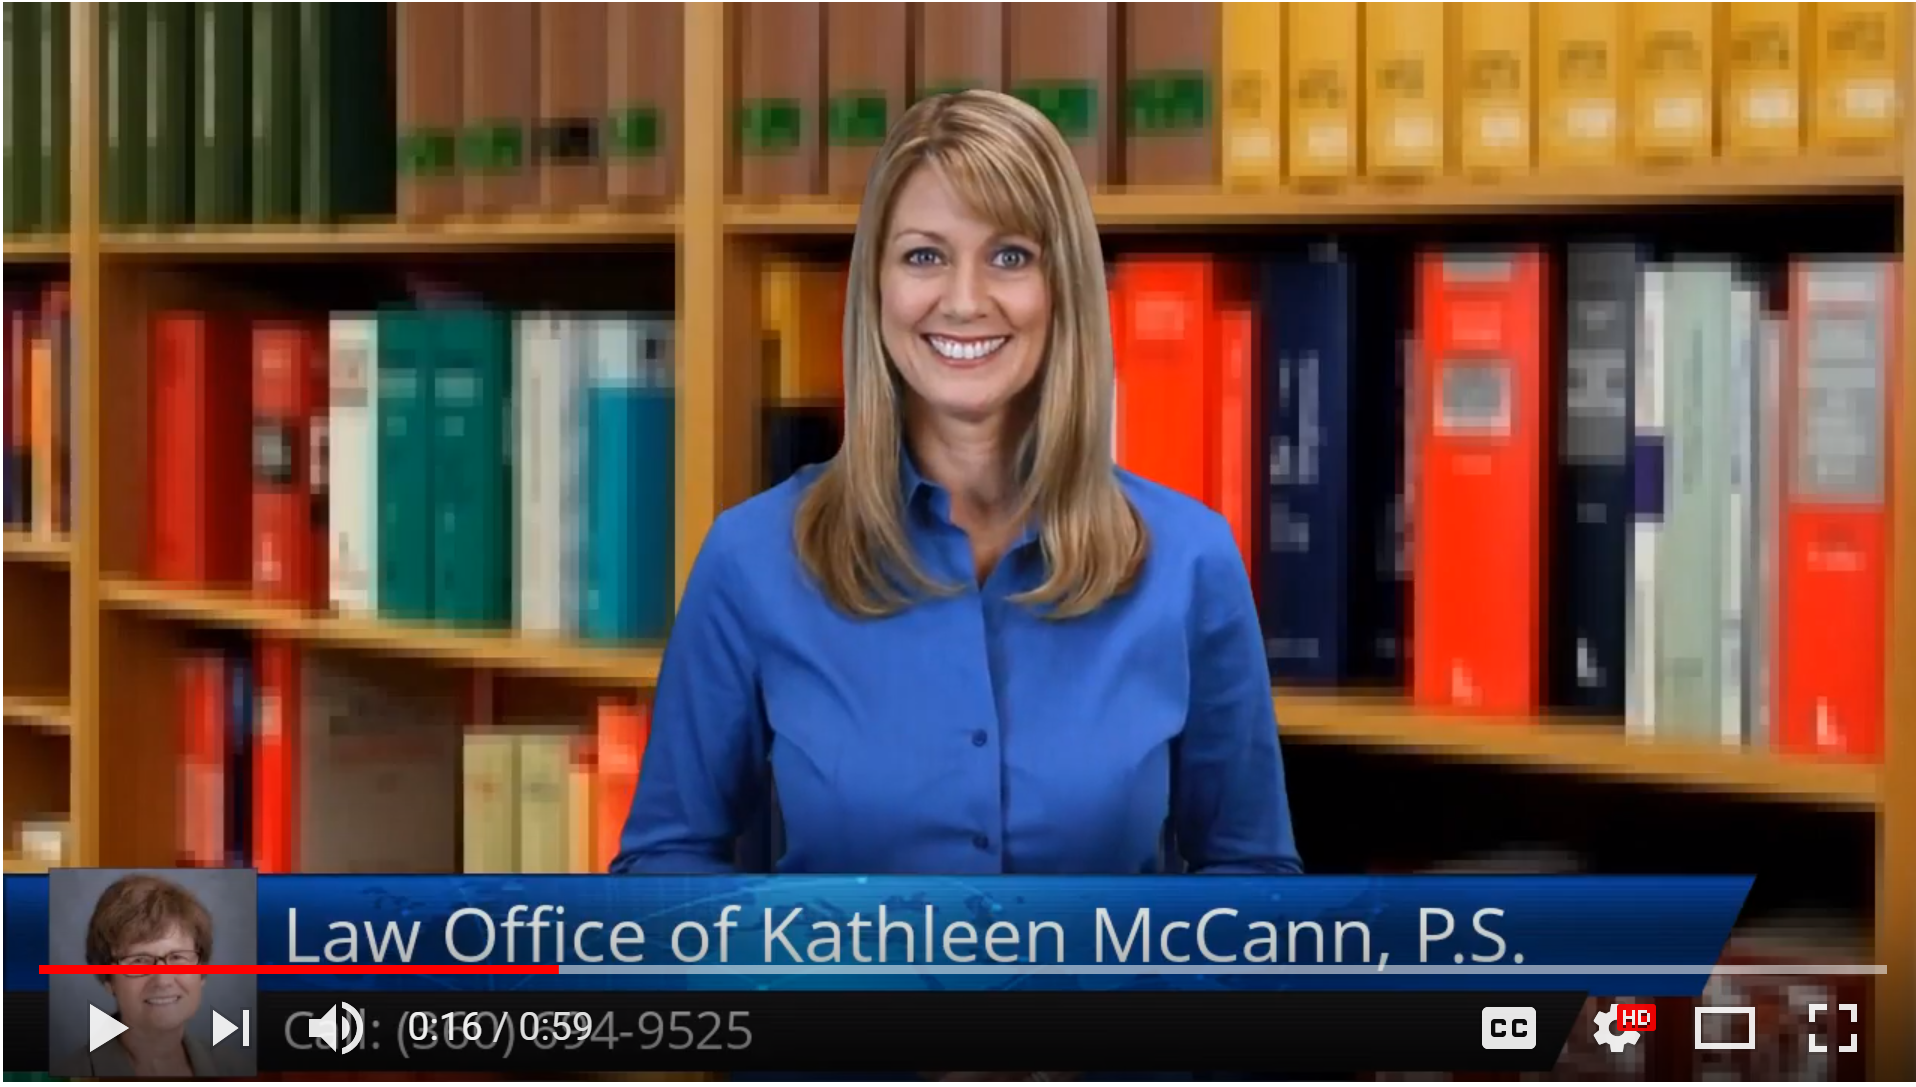 5 Star Adoption and Family Law Review for Kathleen McCann